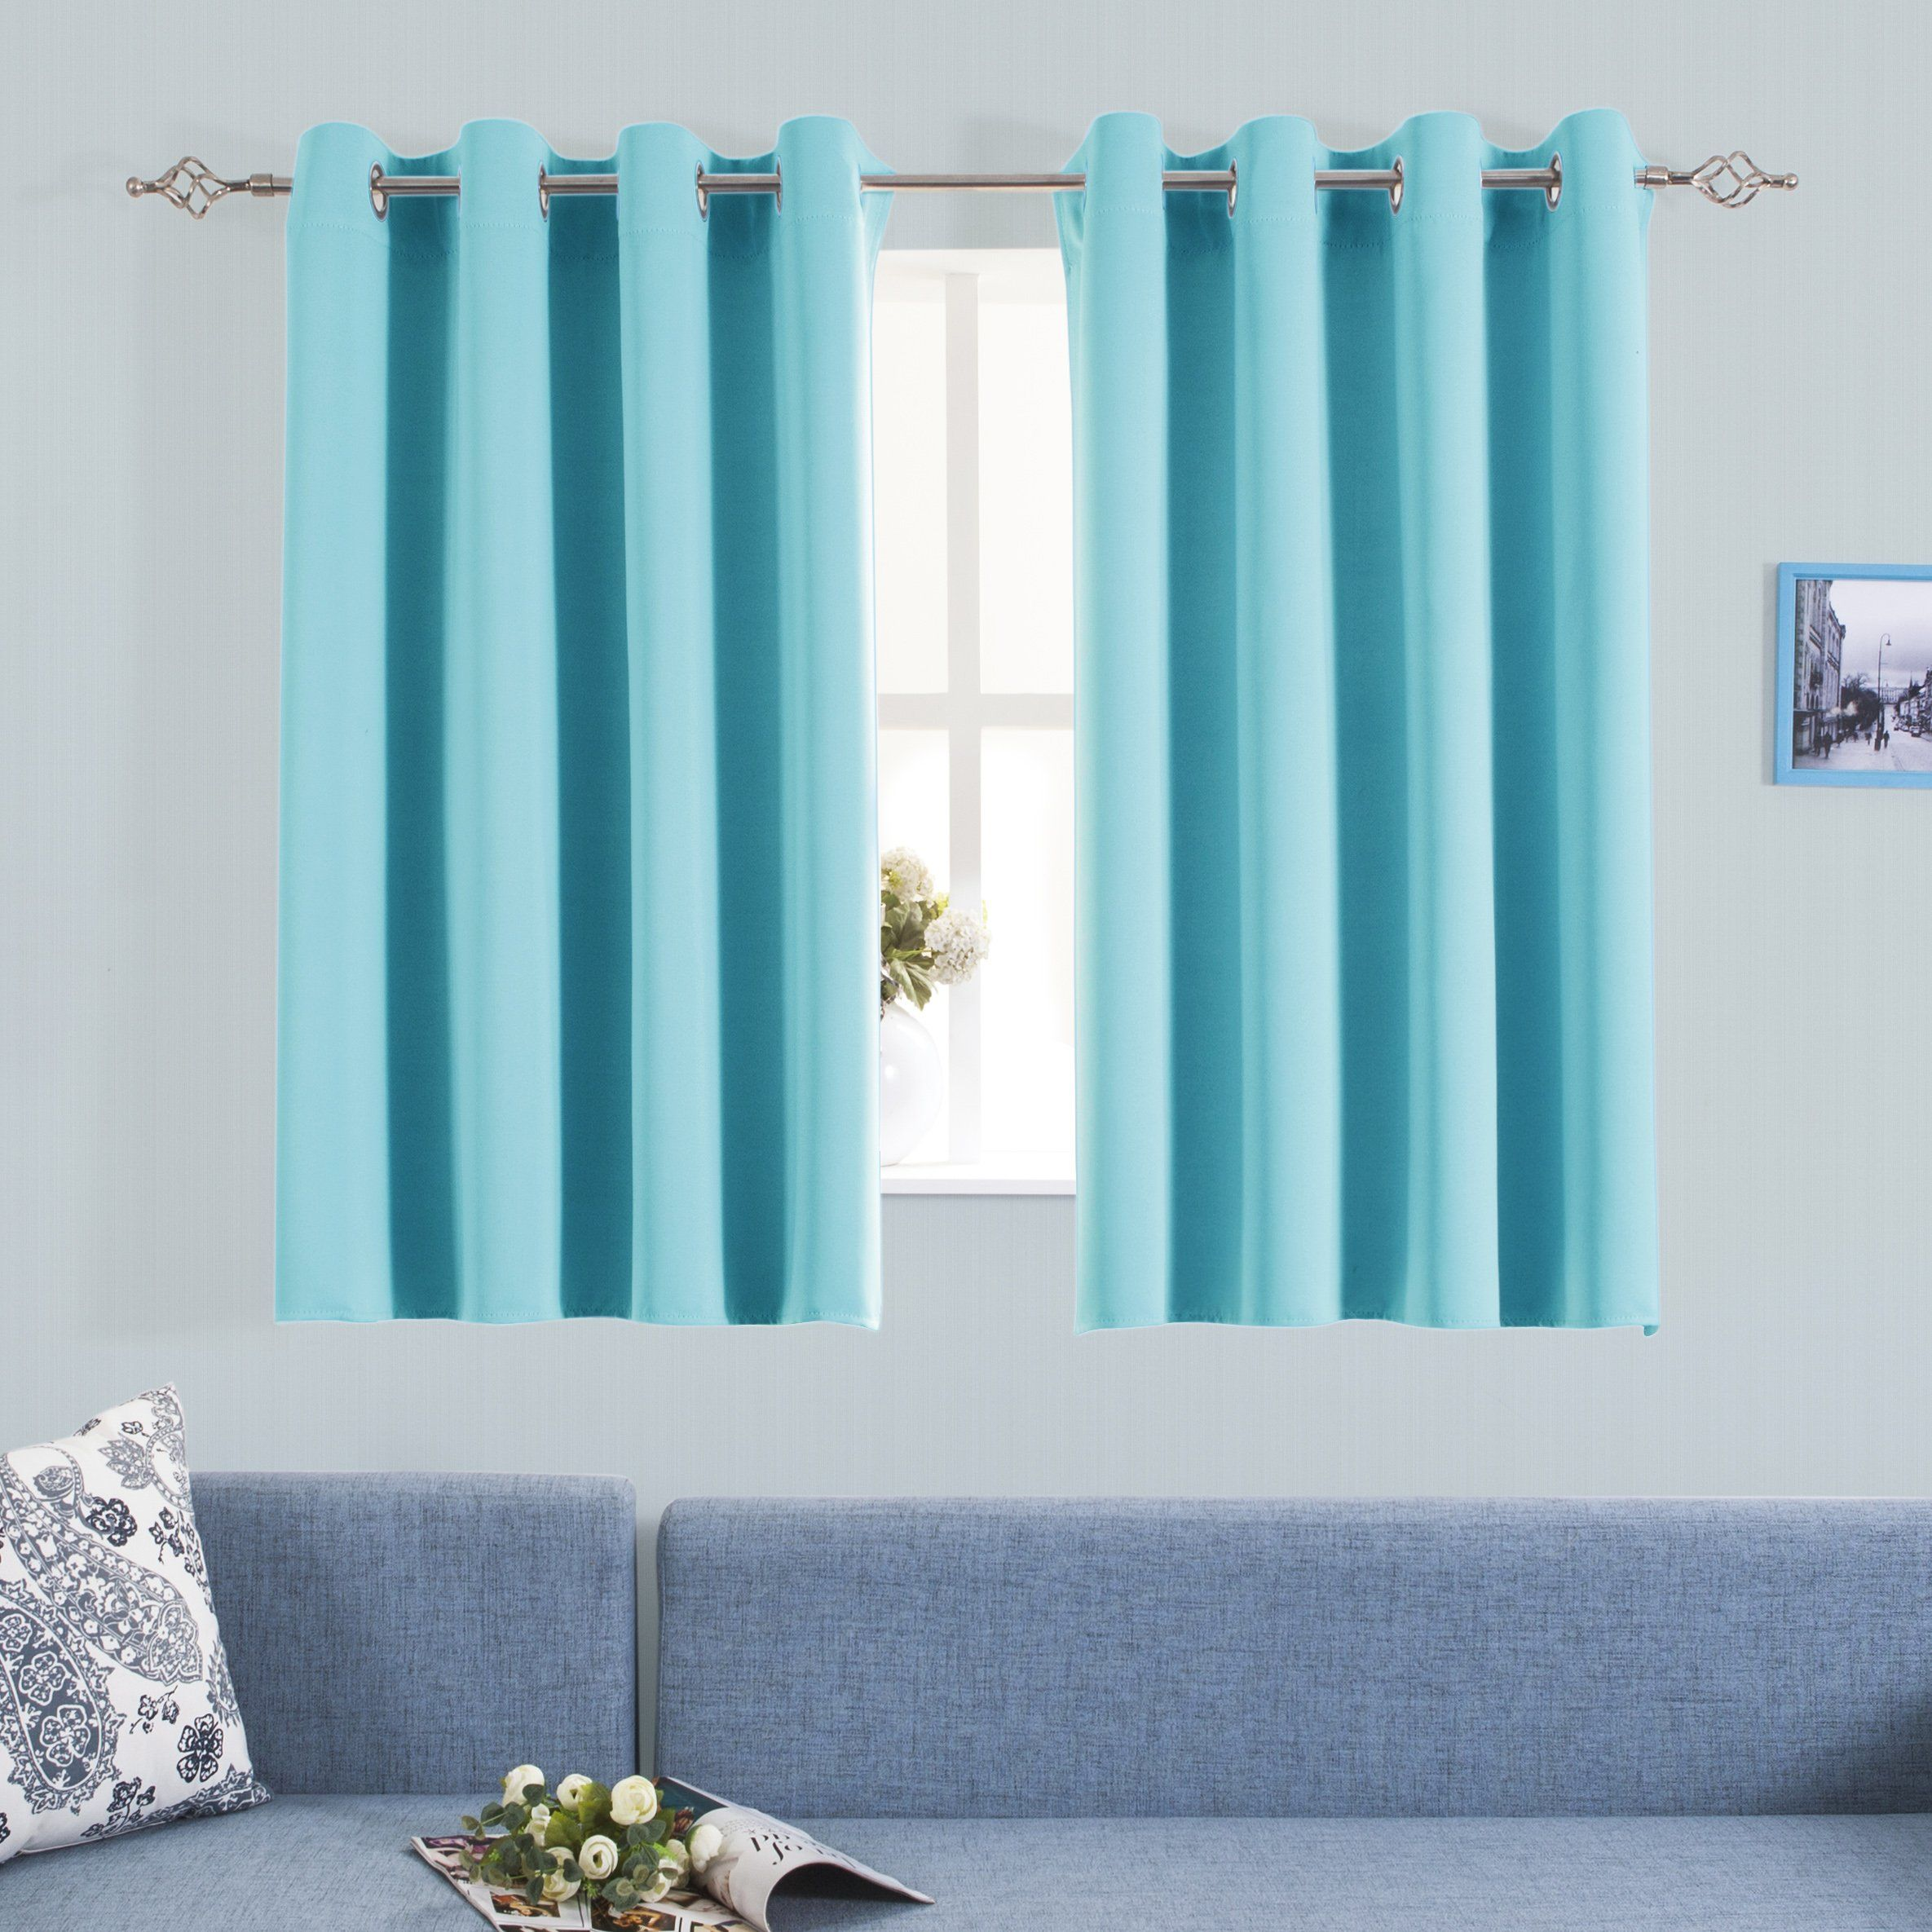 Grommet Blackout Curtains For Kids Room Aquazolax Elegant Blackout Thermal